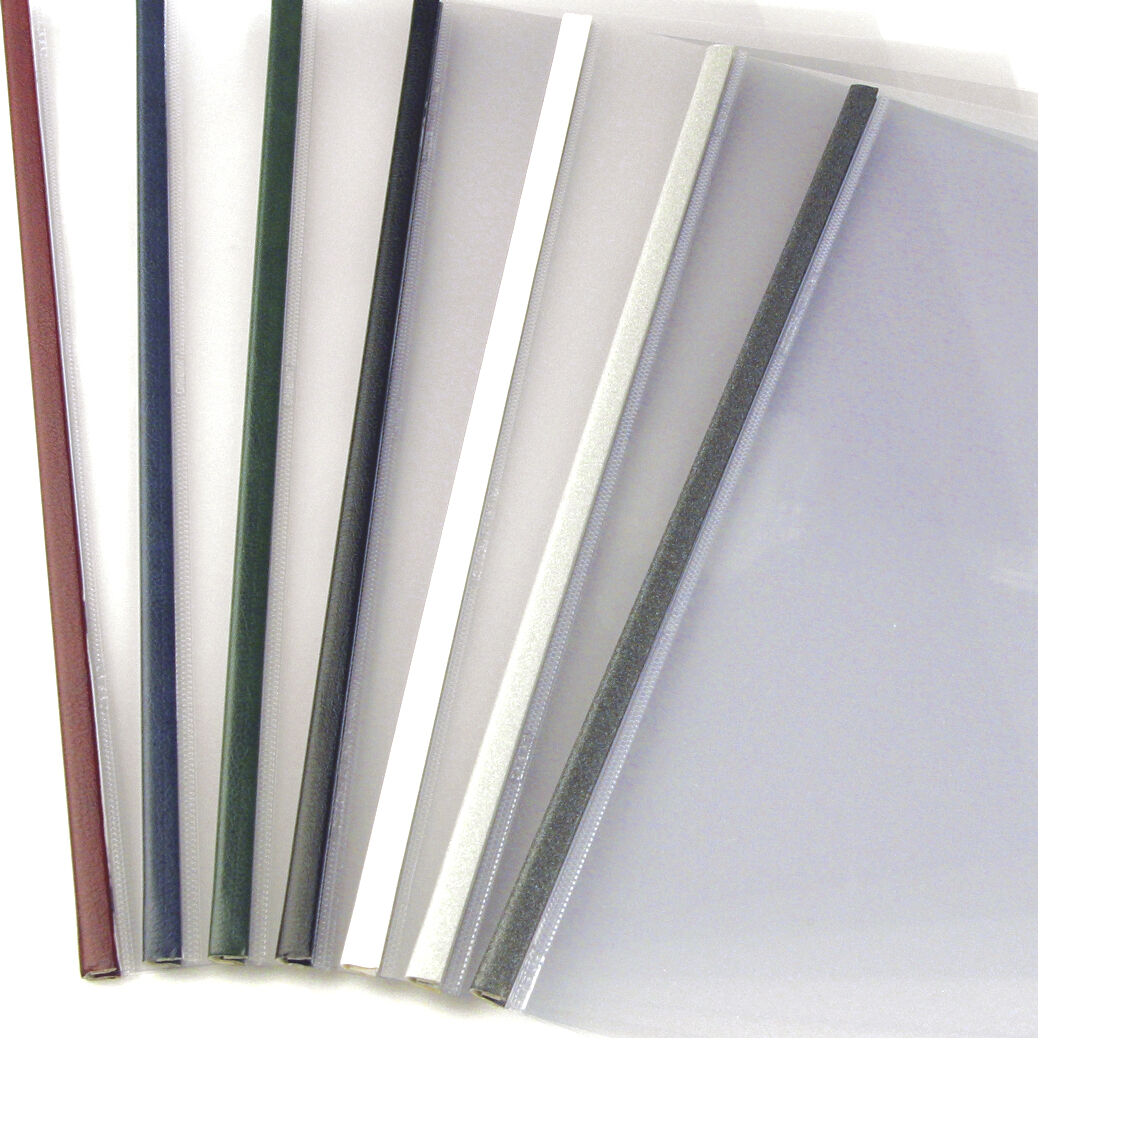 15mm - White - 100pcs UniBind SteelMat Frosted Covers